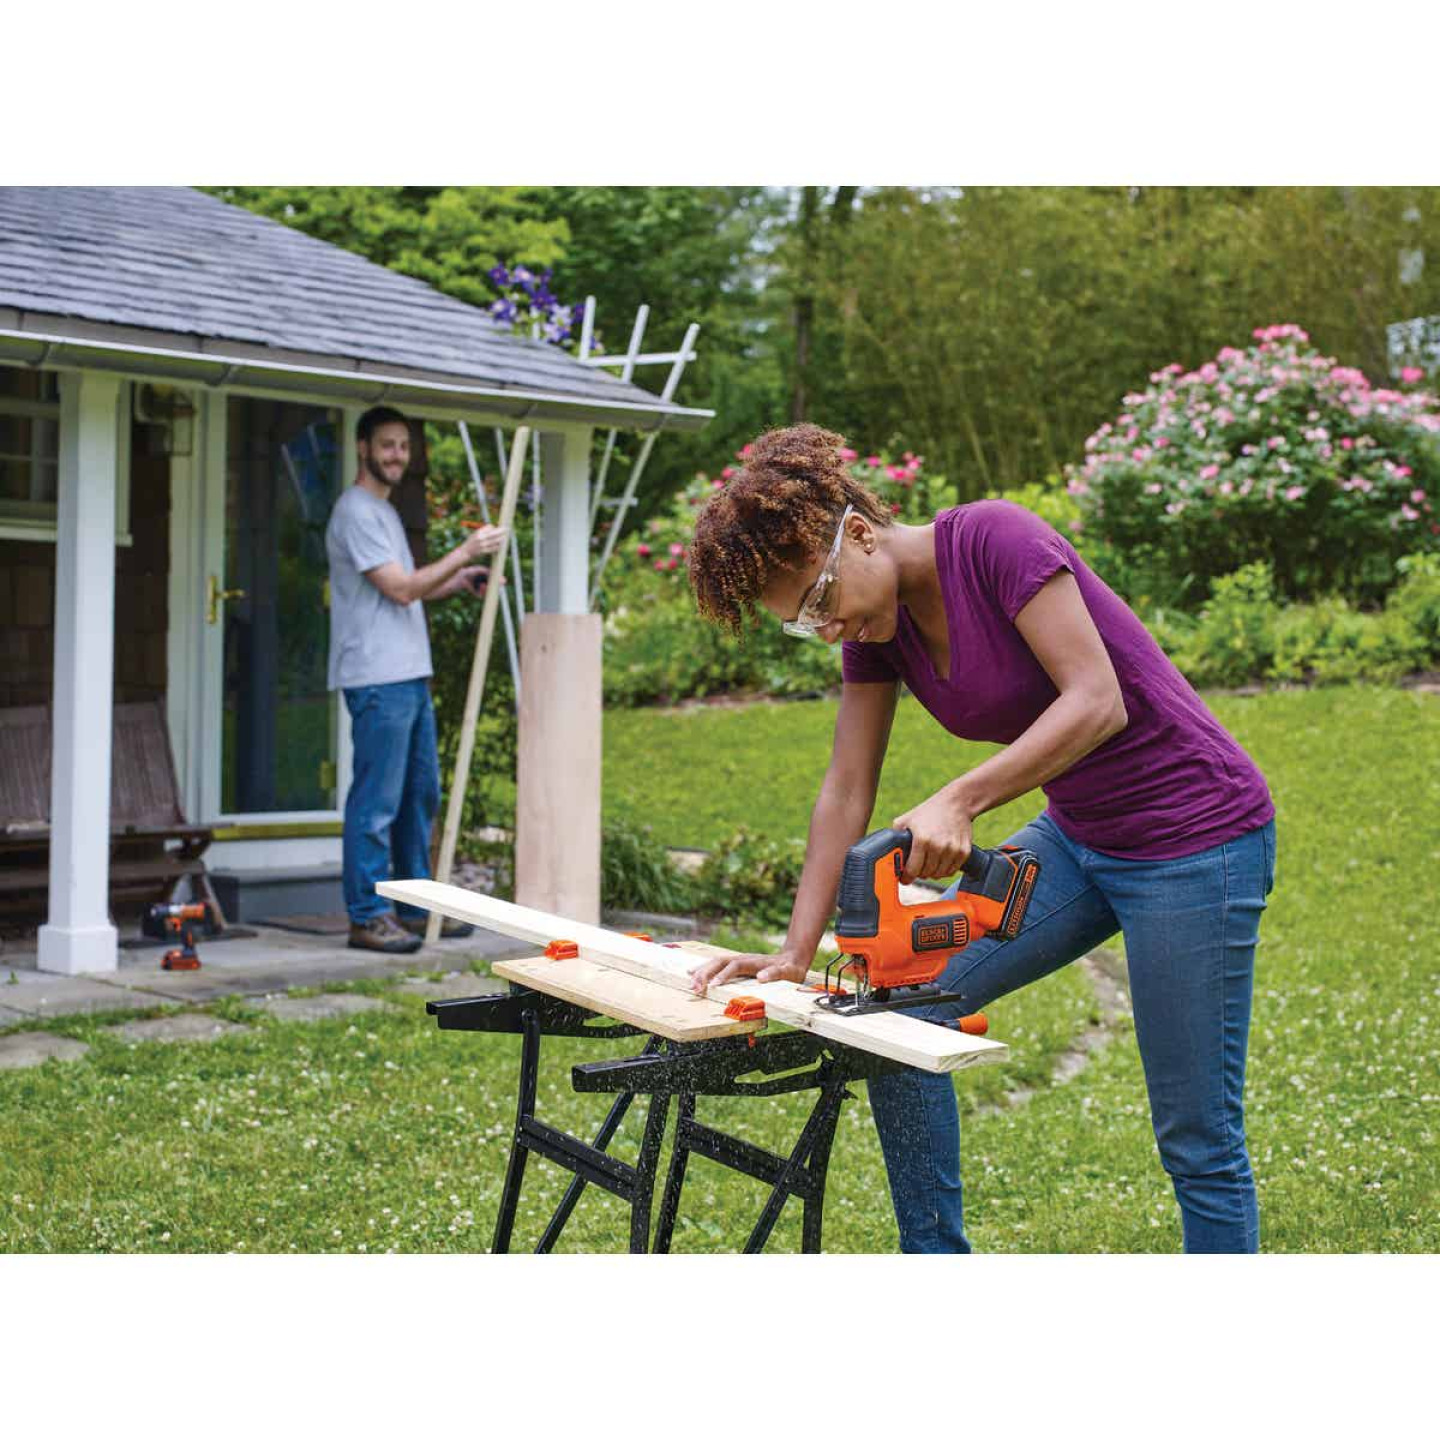 Black & Decker 20 Volt MAX Lithium-Ion 1.5 Ah Cordless Jig Saw Kit Image 3